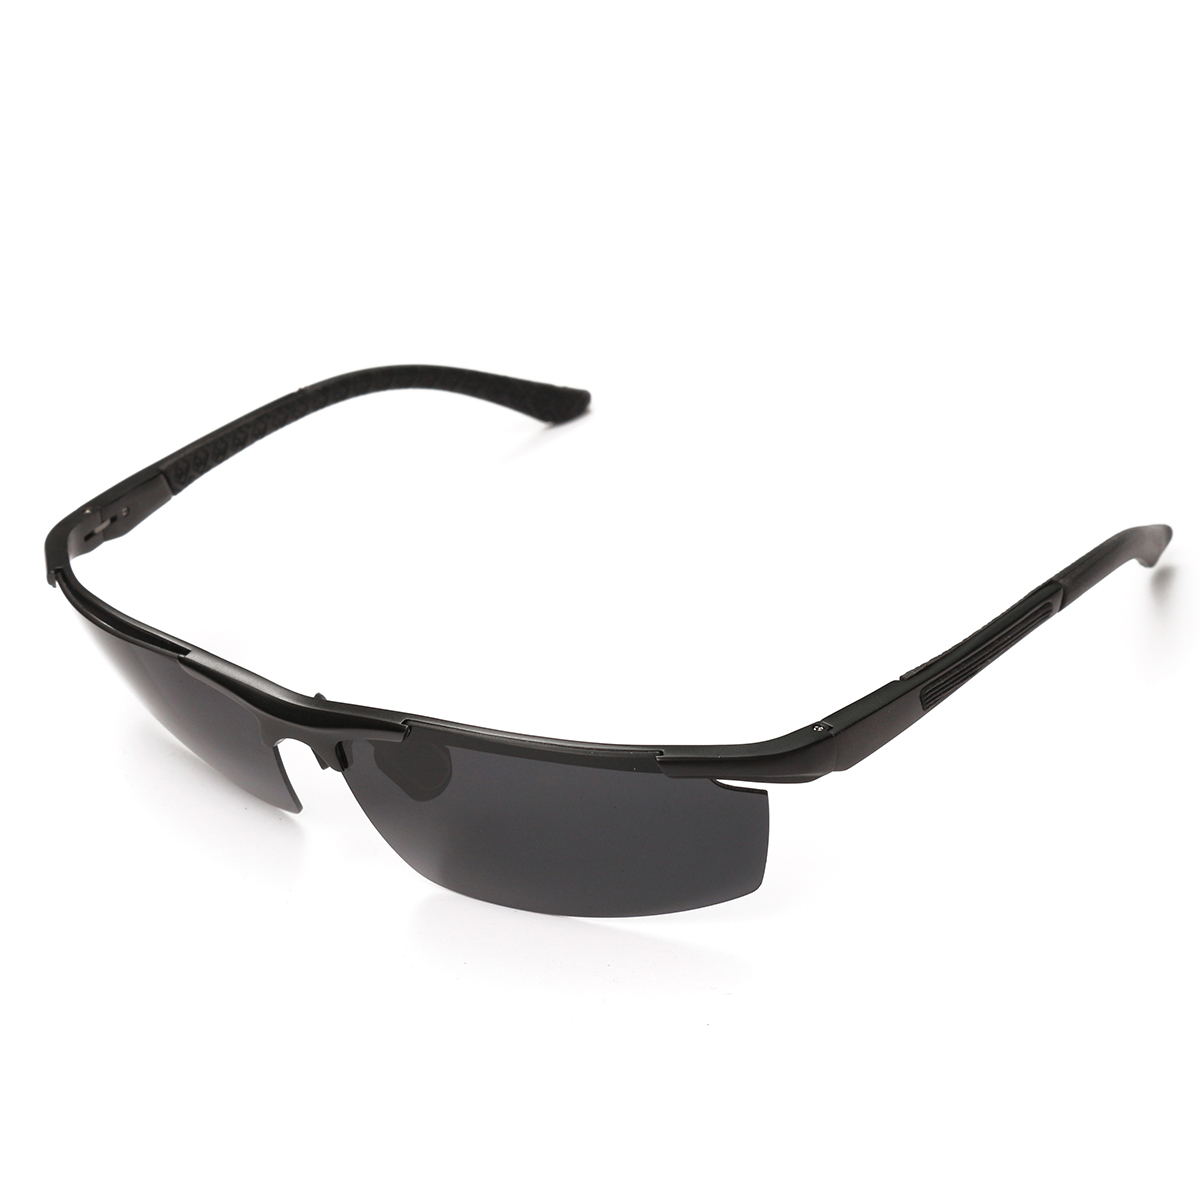 Men Uv Protection Sun Glassess Half Frame Outdooors Sports Eyewear Driving Cycling Glasses